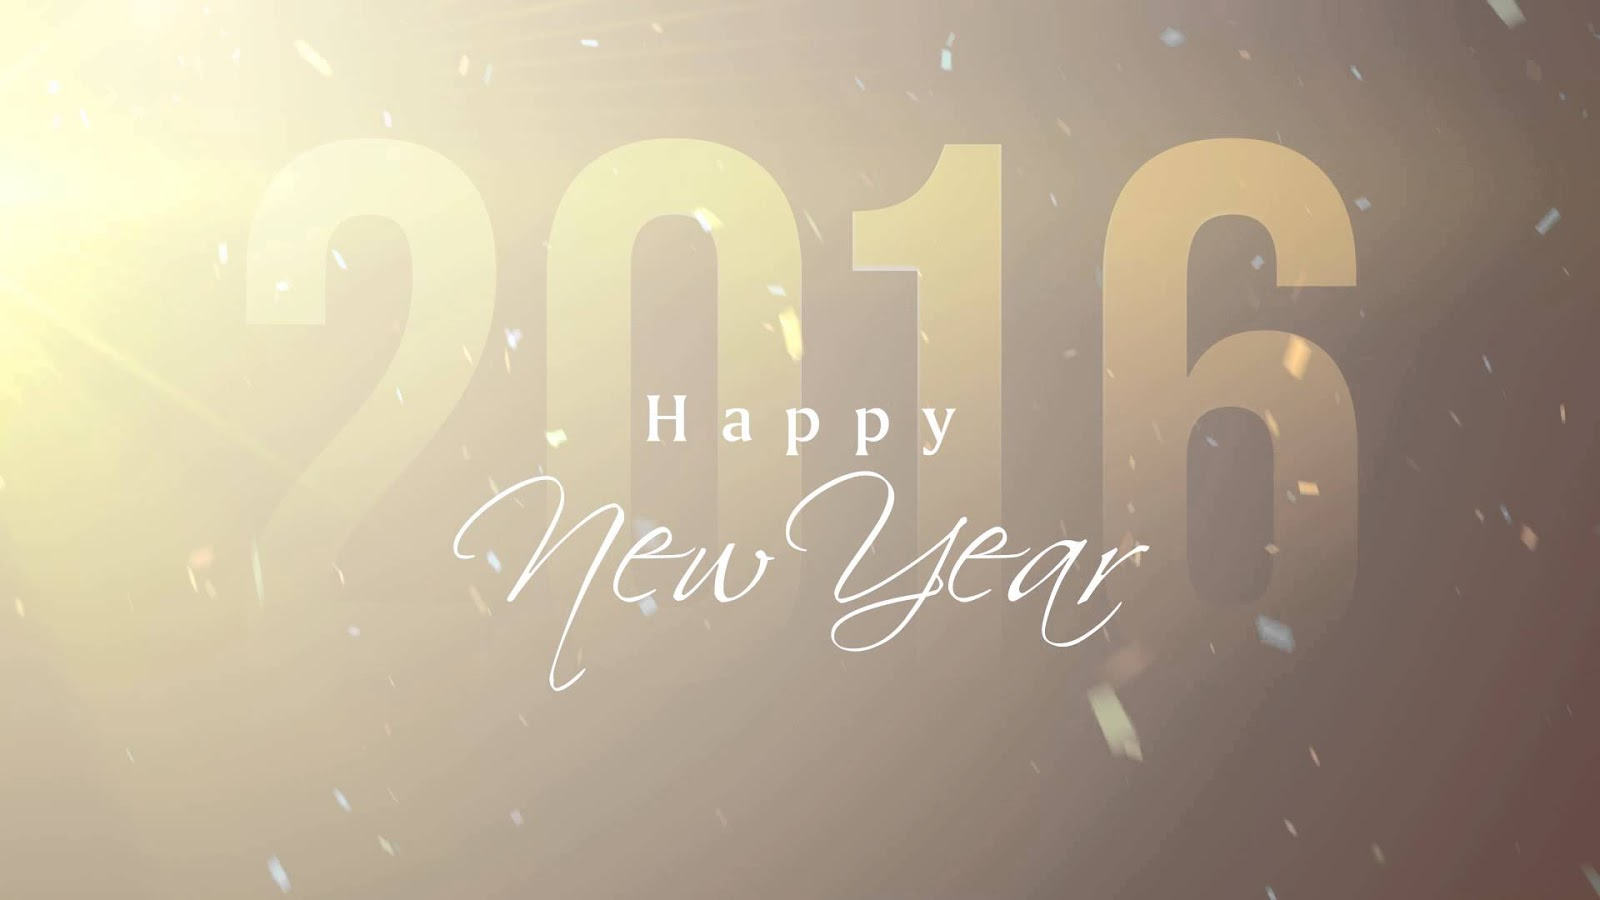 Happy New Year 2016 Images Happy New Year 2016 Wishes Wallpapers 1600x900